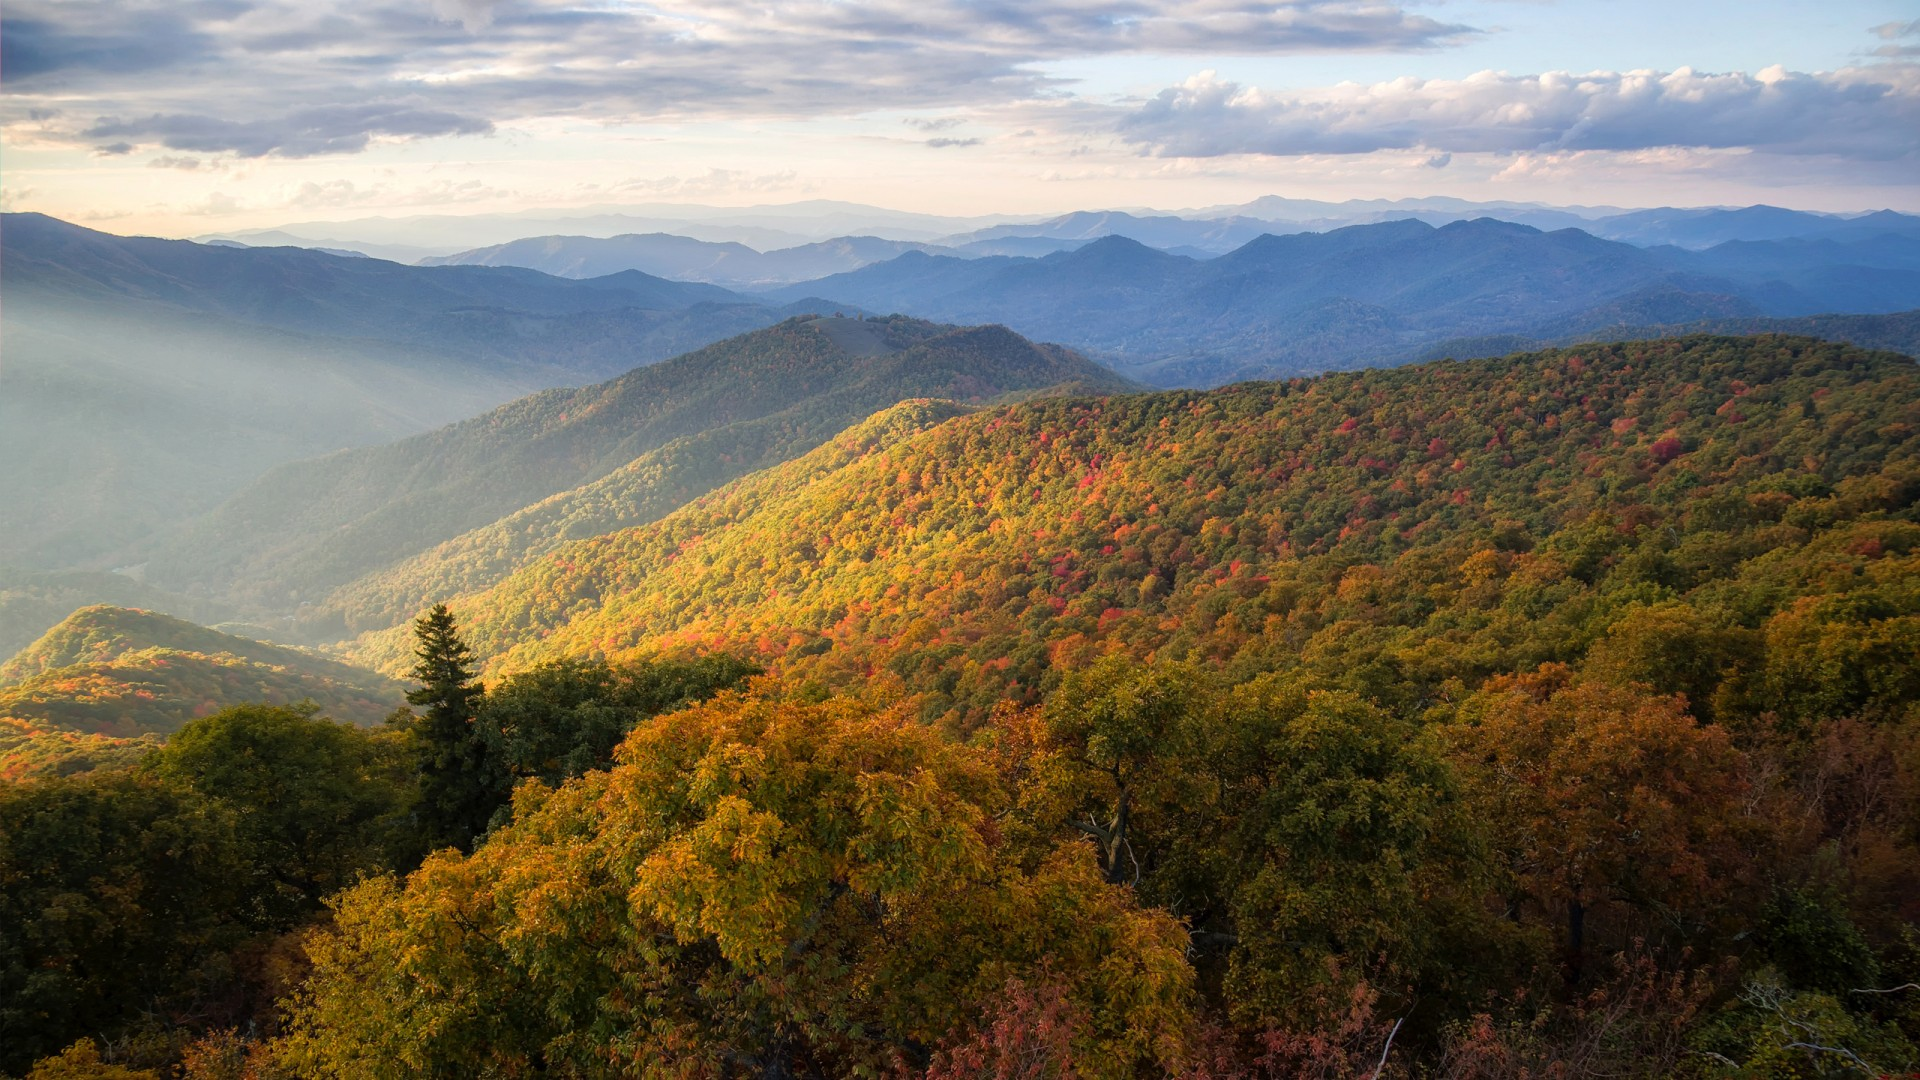 3d Wallpaper For Ipad Retina Blue Ridge Mountains North Carolina Wallpapers Hd